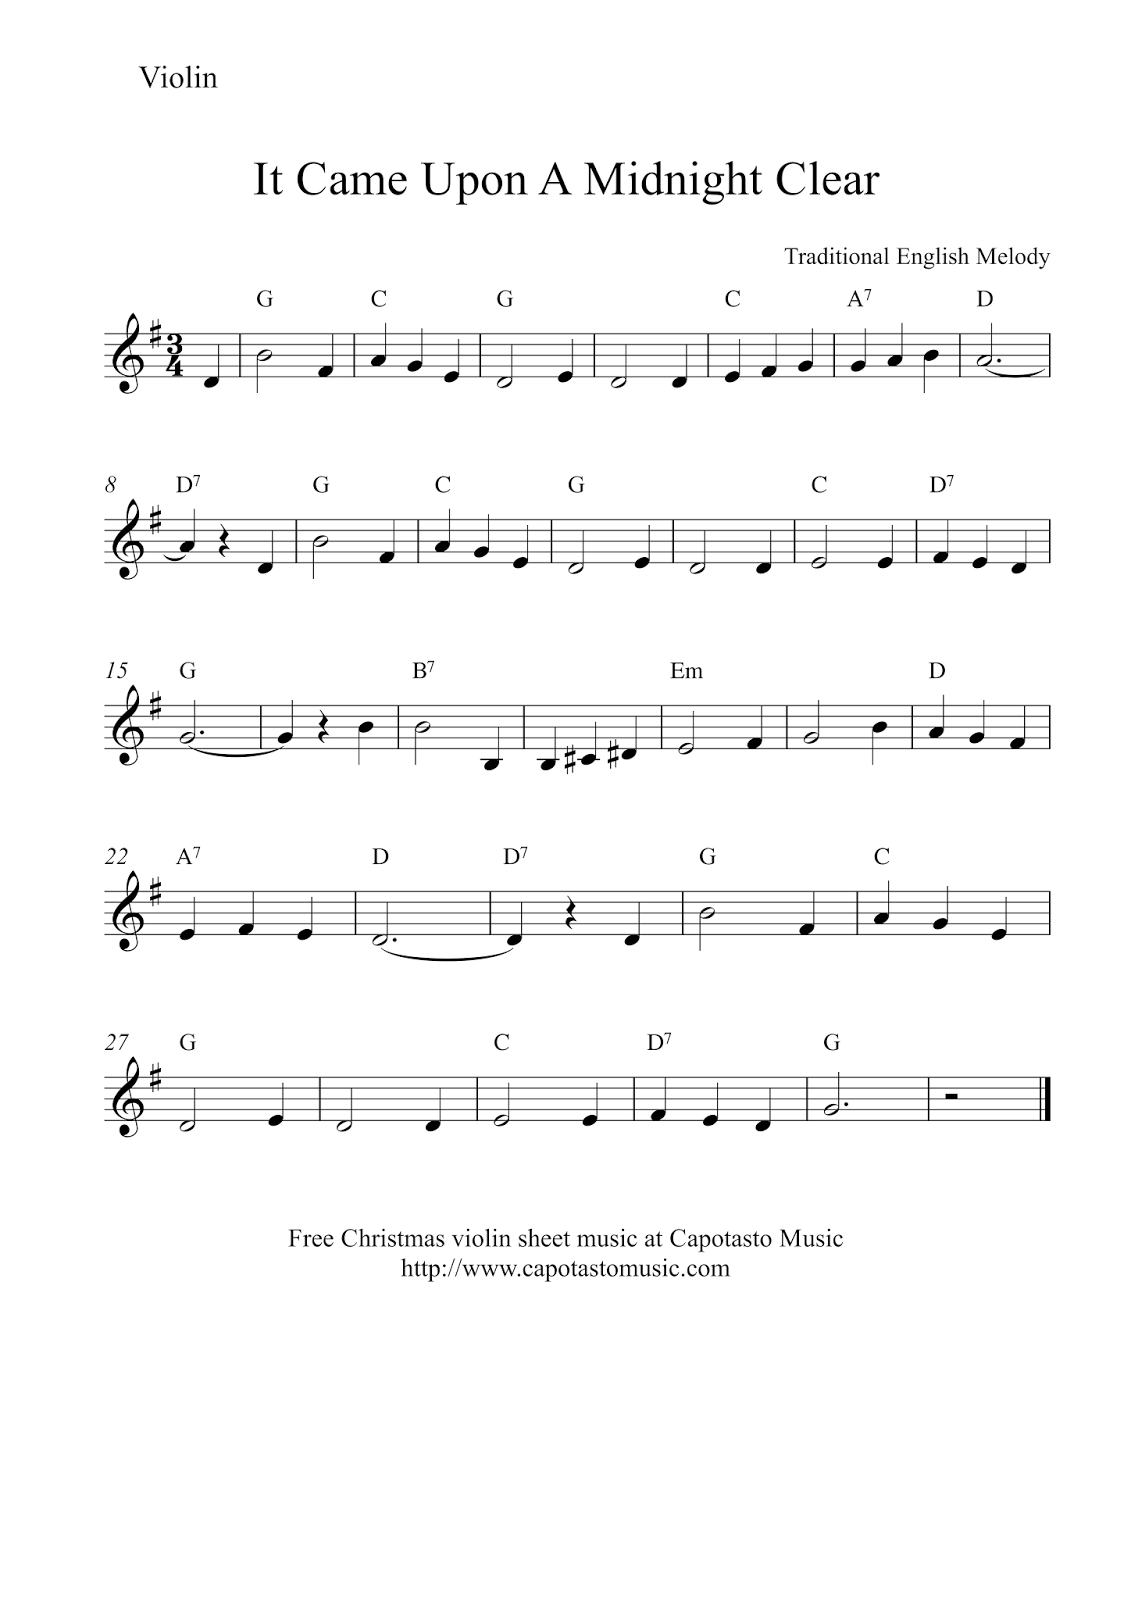 This is an image of Obsessed Printable Violin Sheet Music